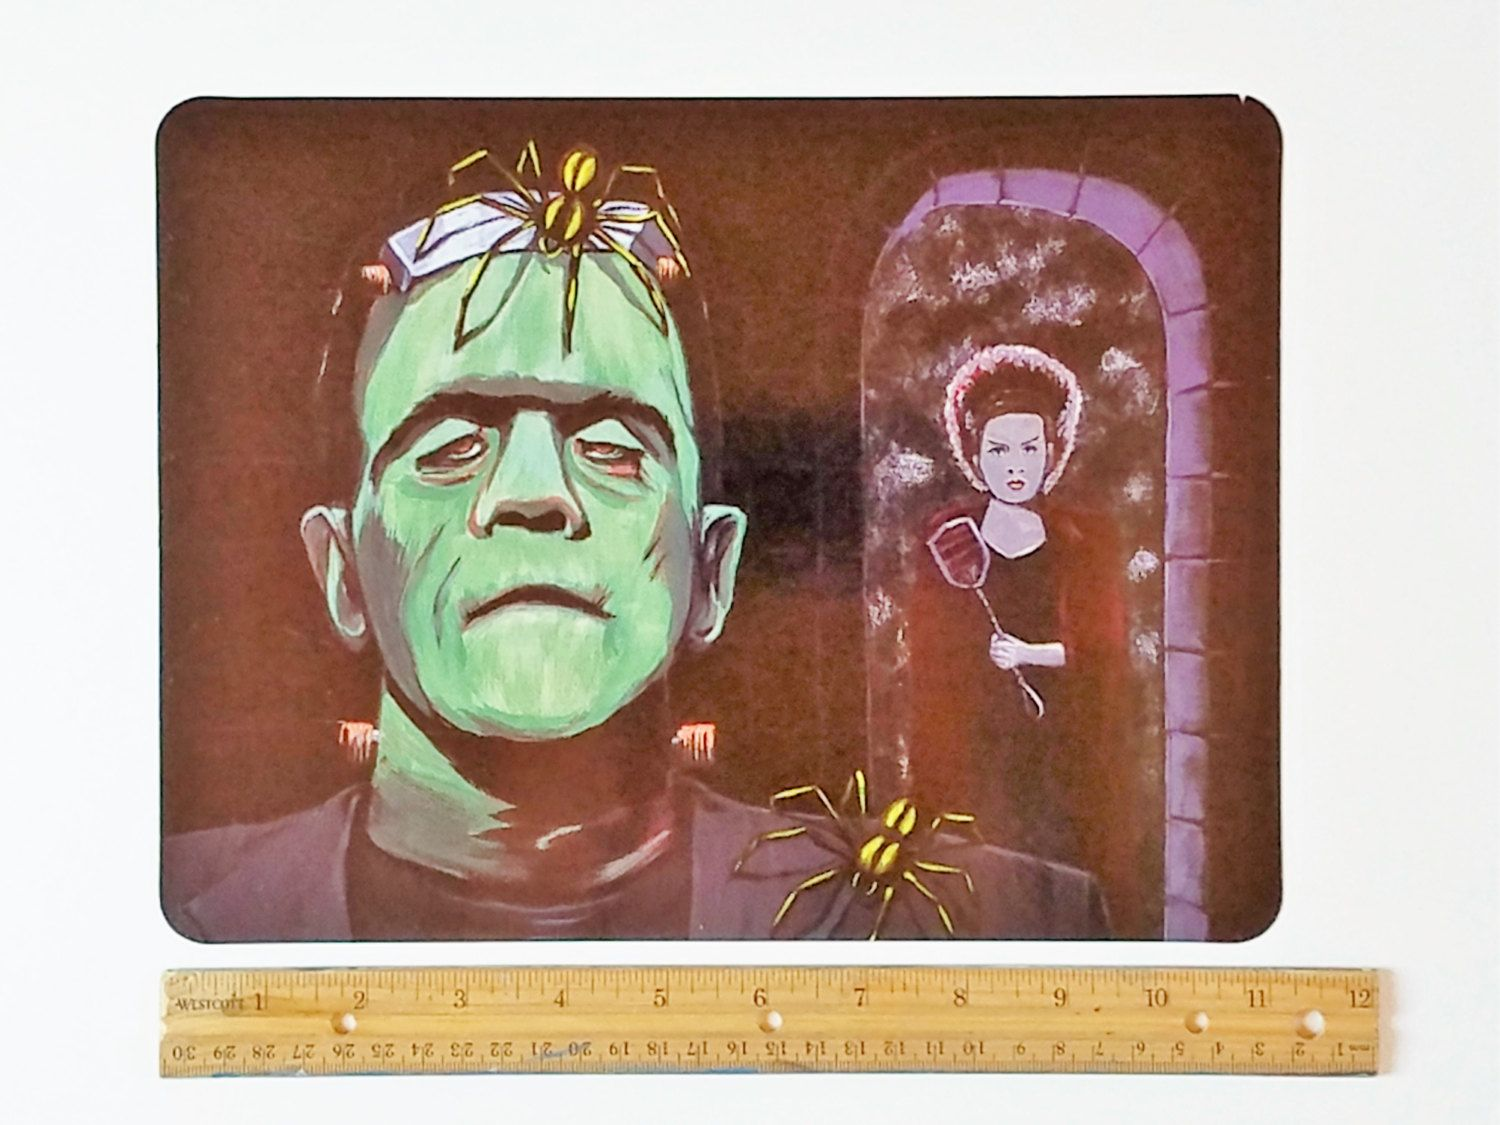 Scary Halloween Decoration, Large Refrigerator Magnet, Frankenstein - Spooky Halloween Decorations